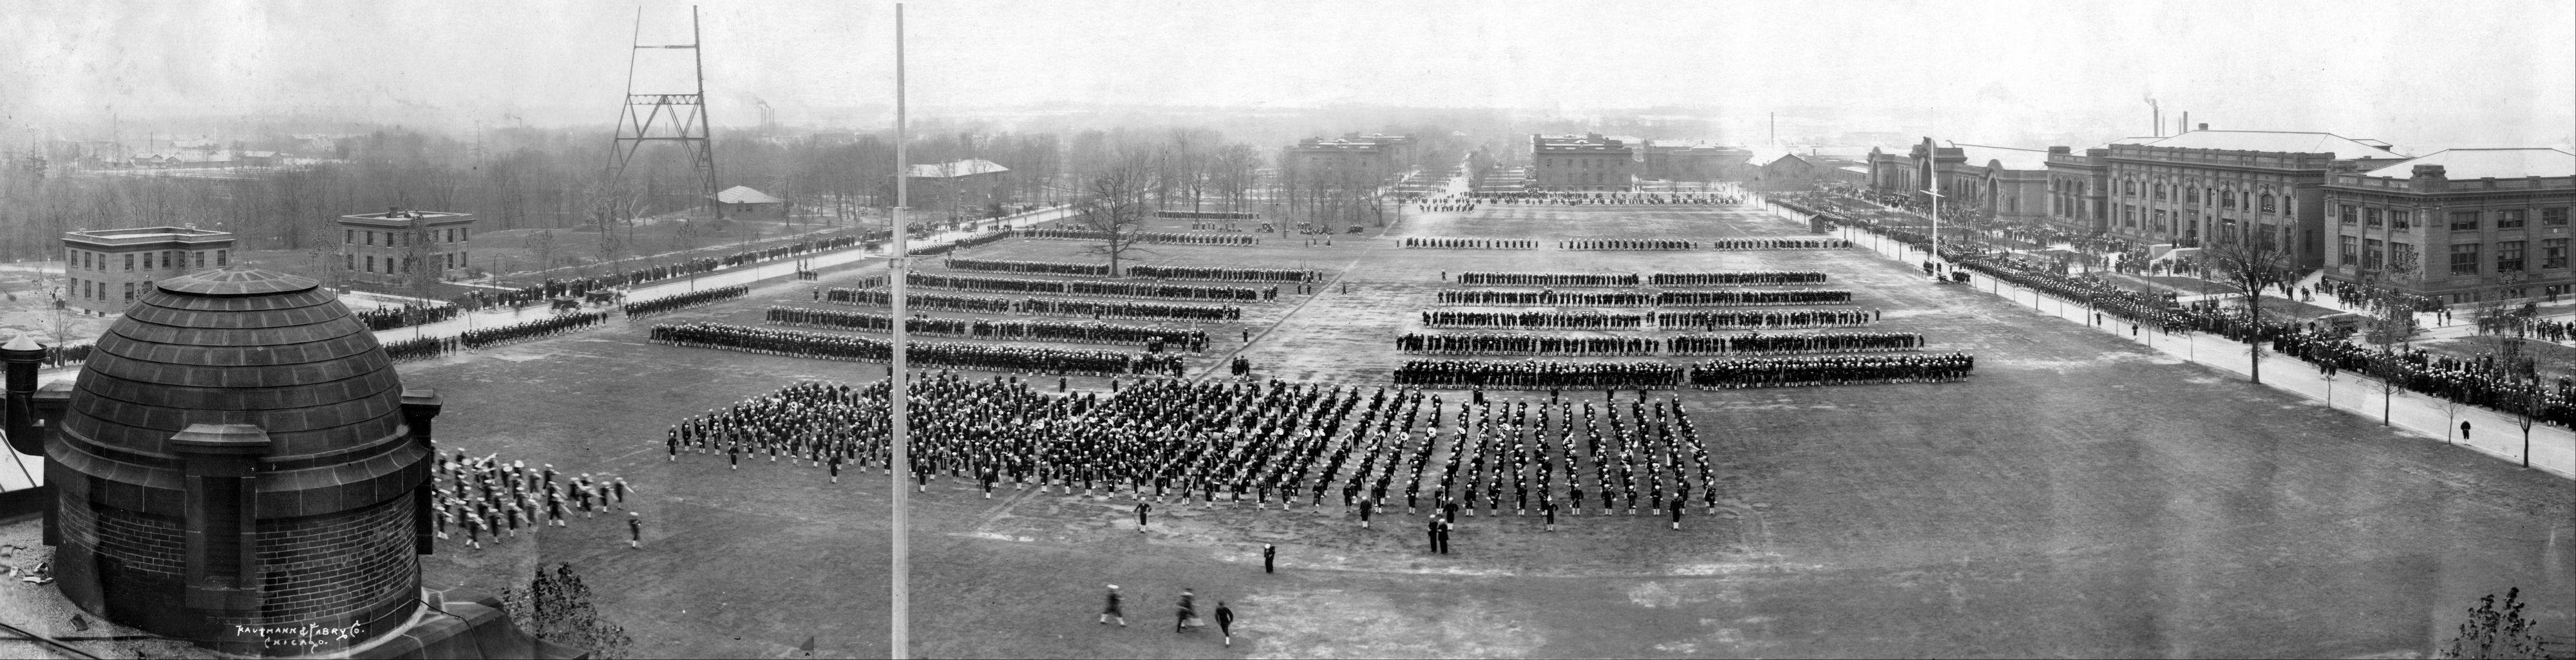 Ross Field at Great Lakes Naval Station during World War II.